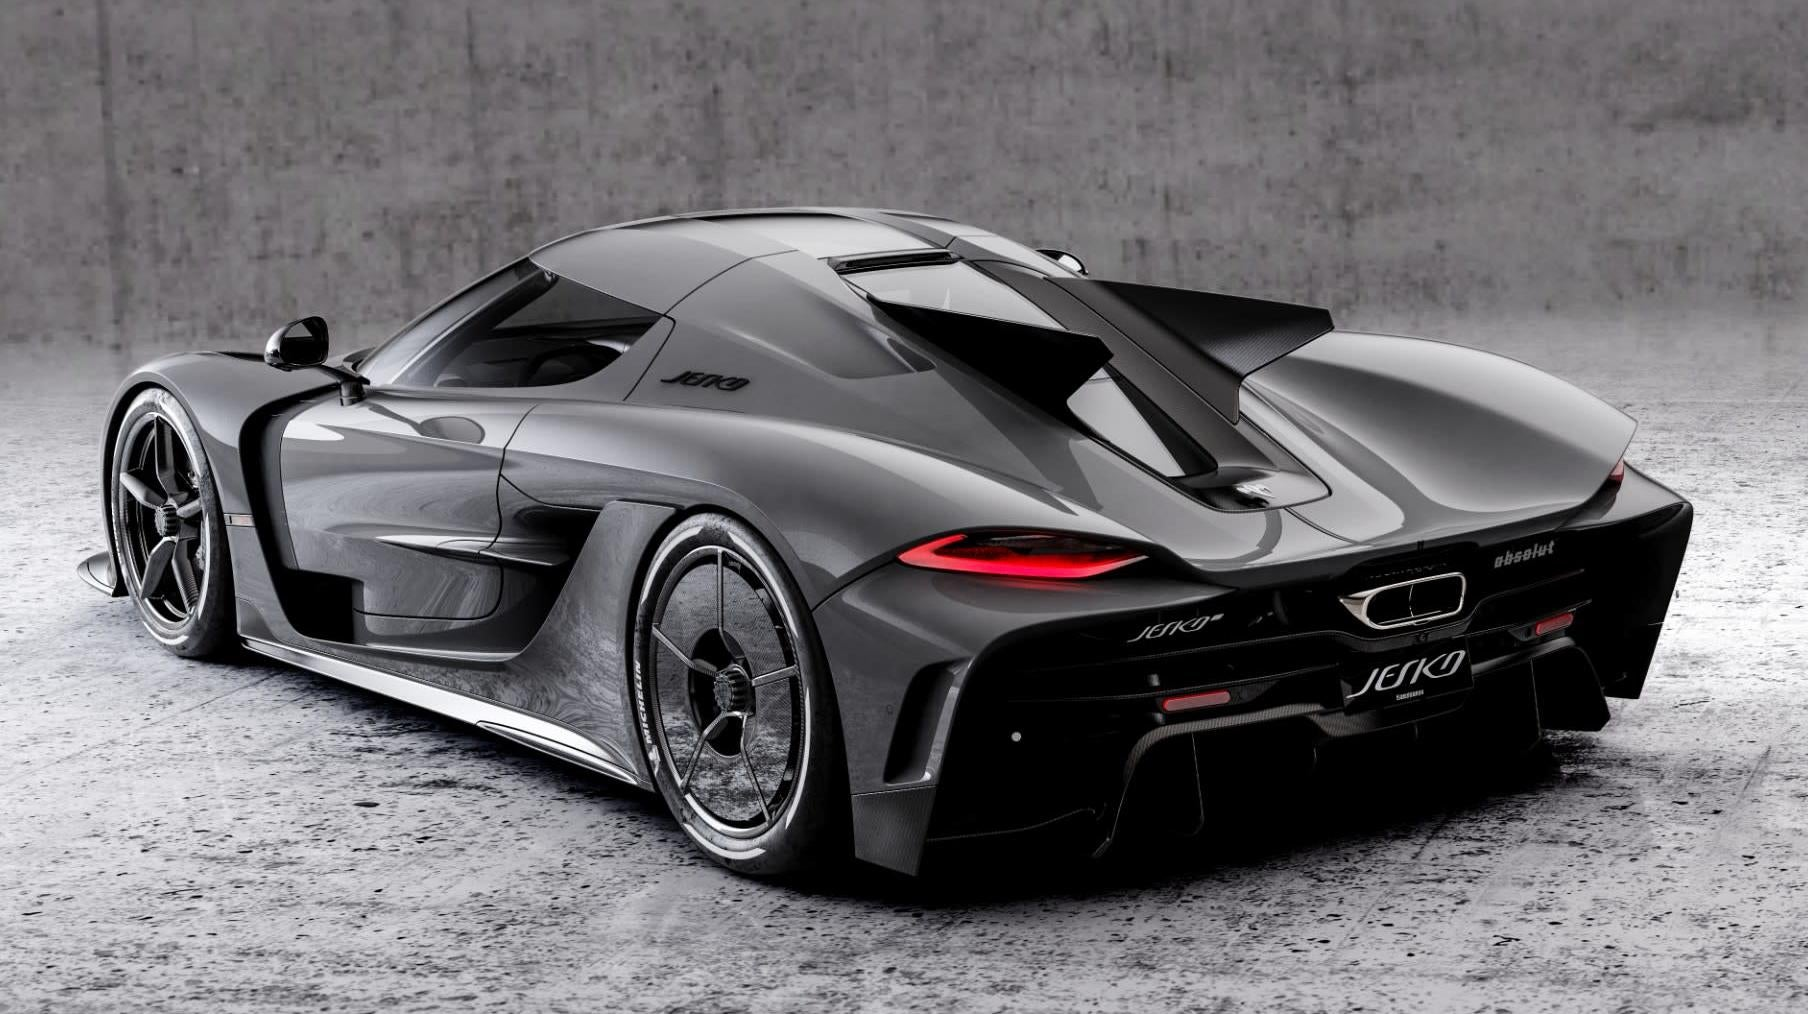 The Koenigsegg Jesko Absolut Ditches The Giant Spoiler For Ultimate Top Speed